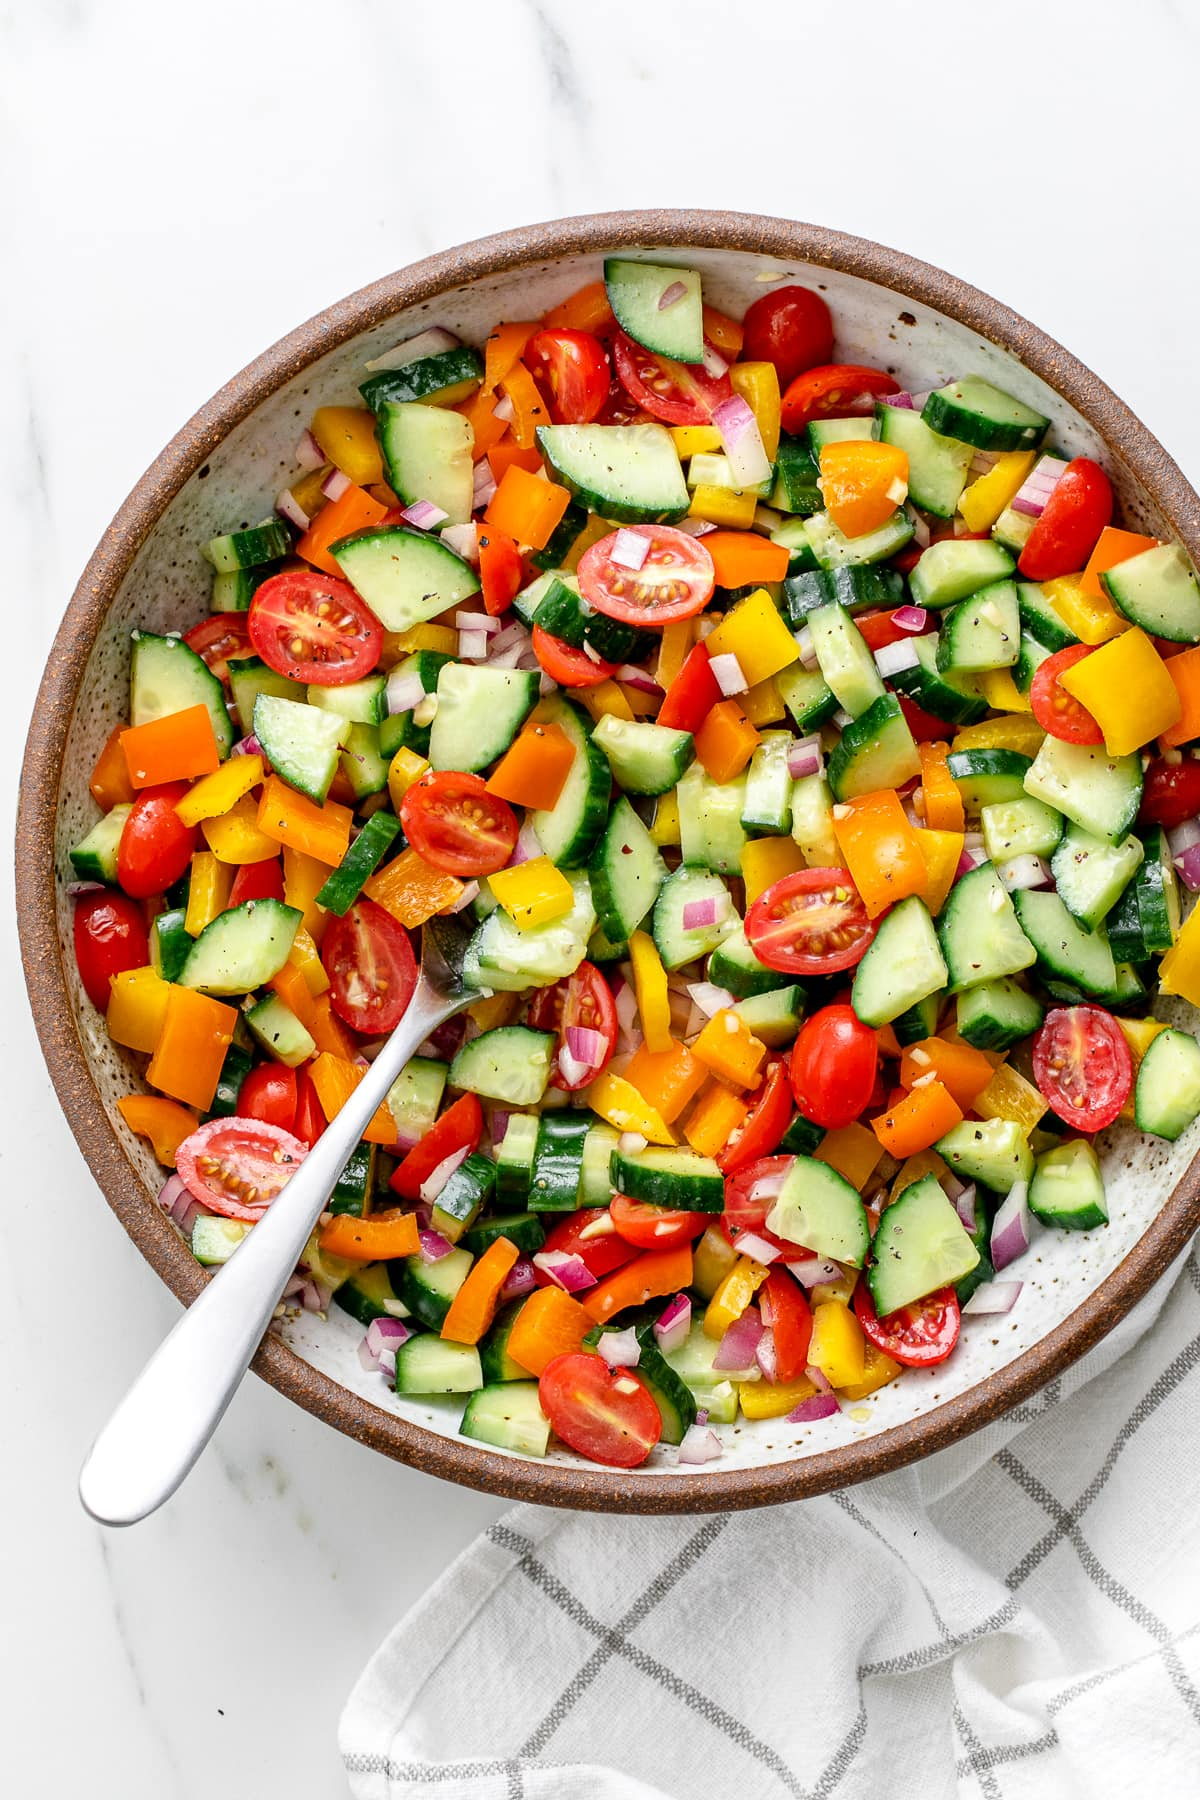 top down view of freshly made vegetable salad in a bowl with serving spoon.